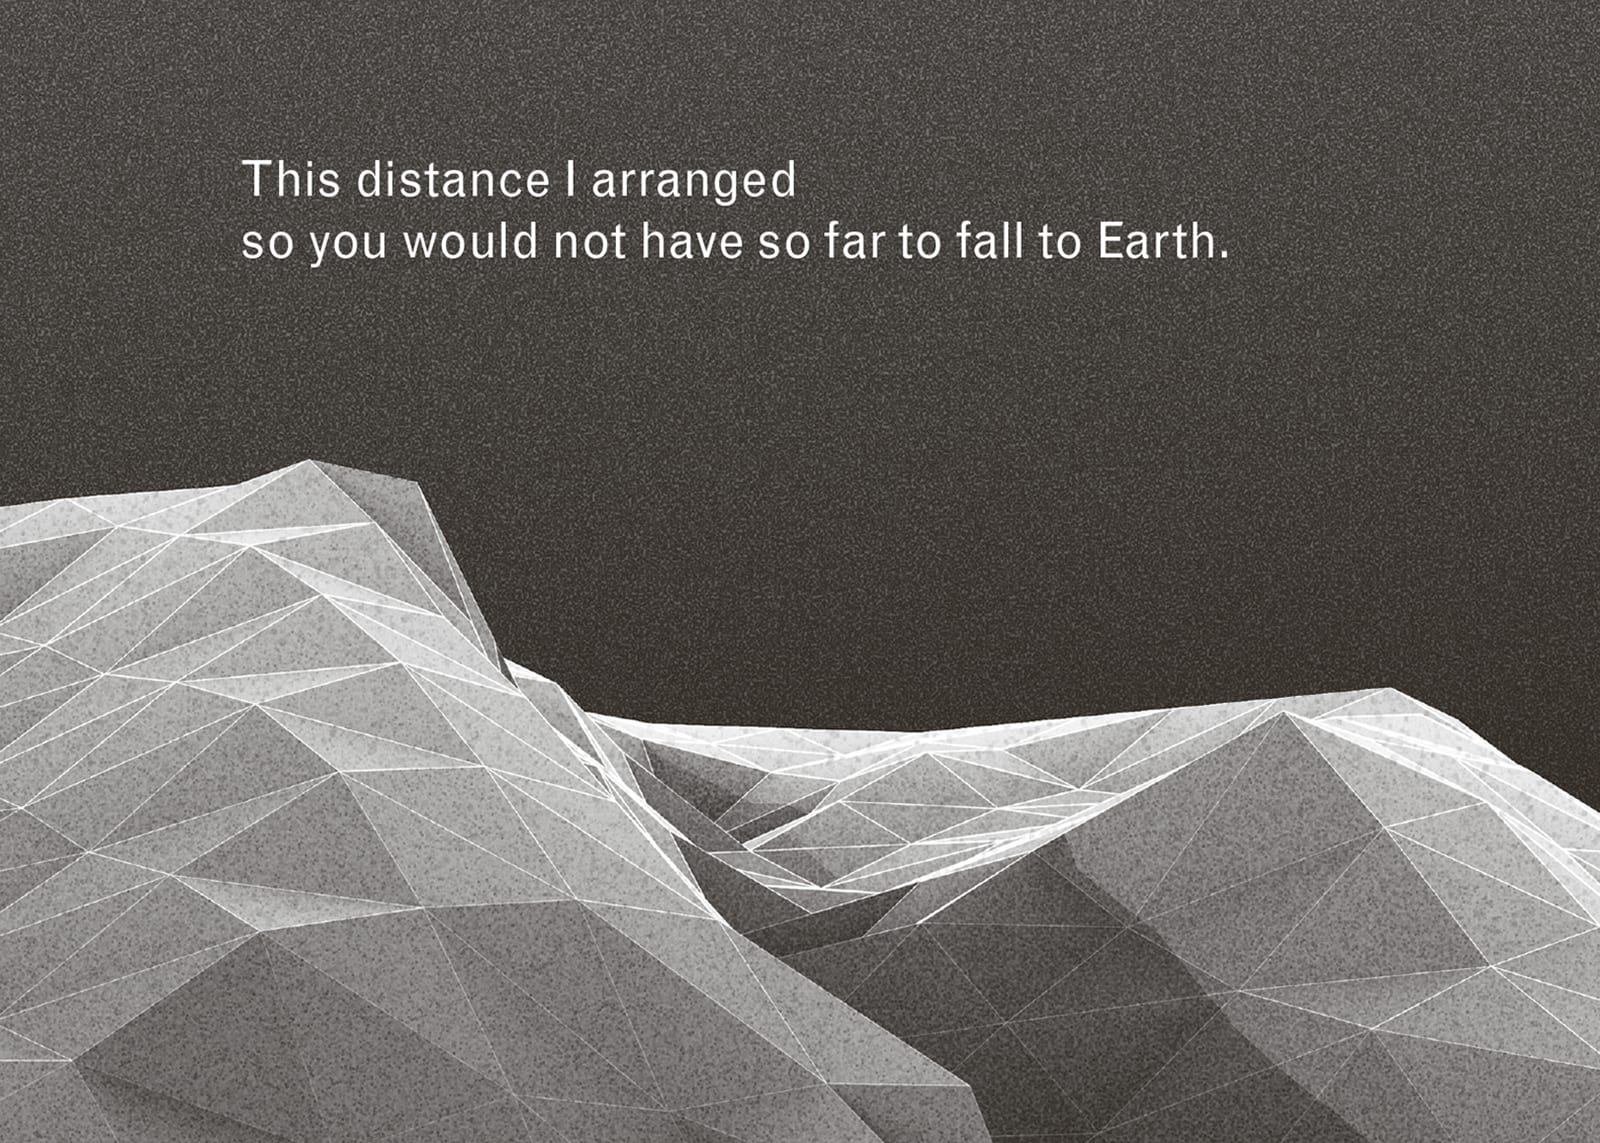 """Detail of a book spread from Imaginary Explosions, page 35. Above black-and-white graphic of mountain topography, text reads, """"This distance I arranged so you would not have so far to fall to Earth."""""""